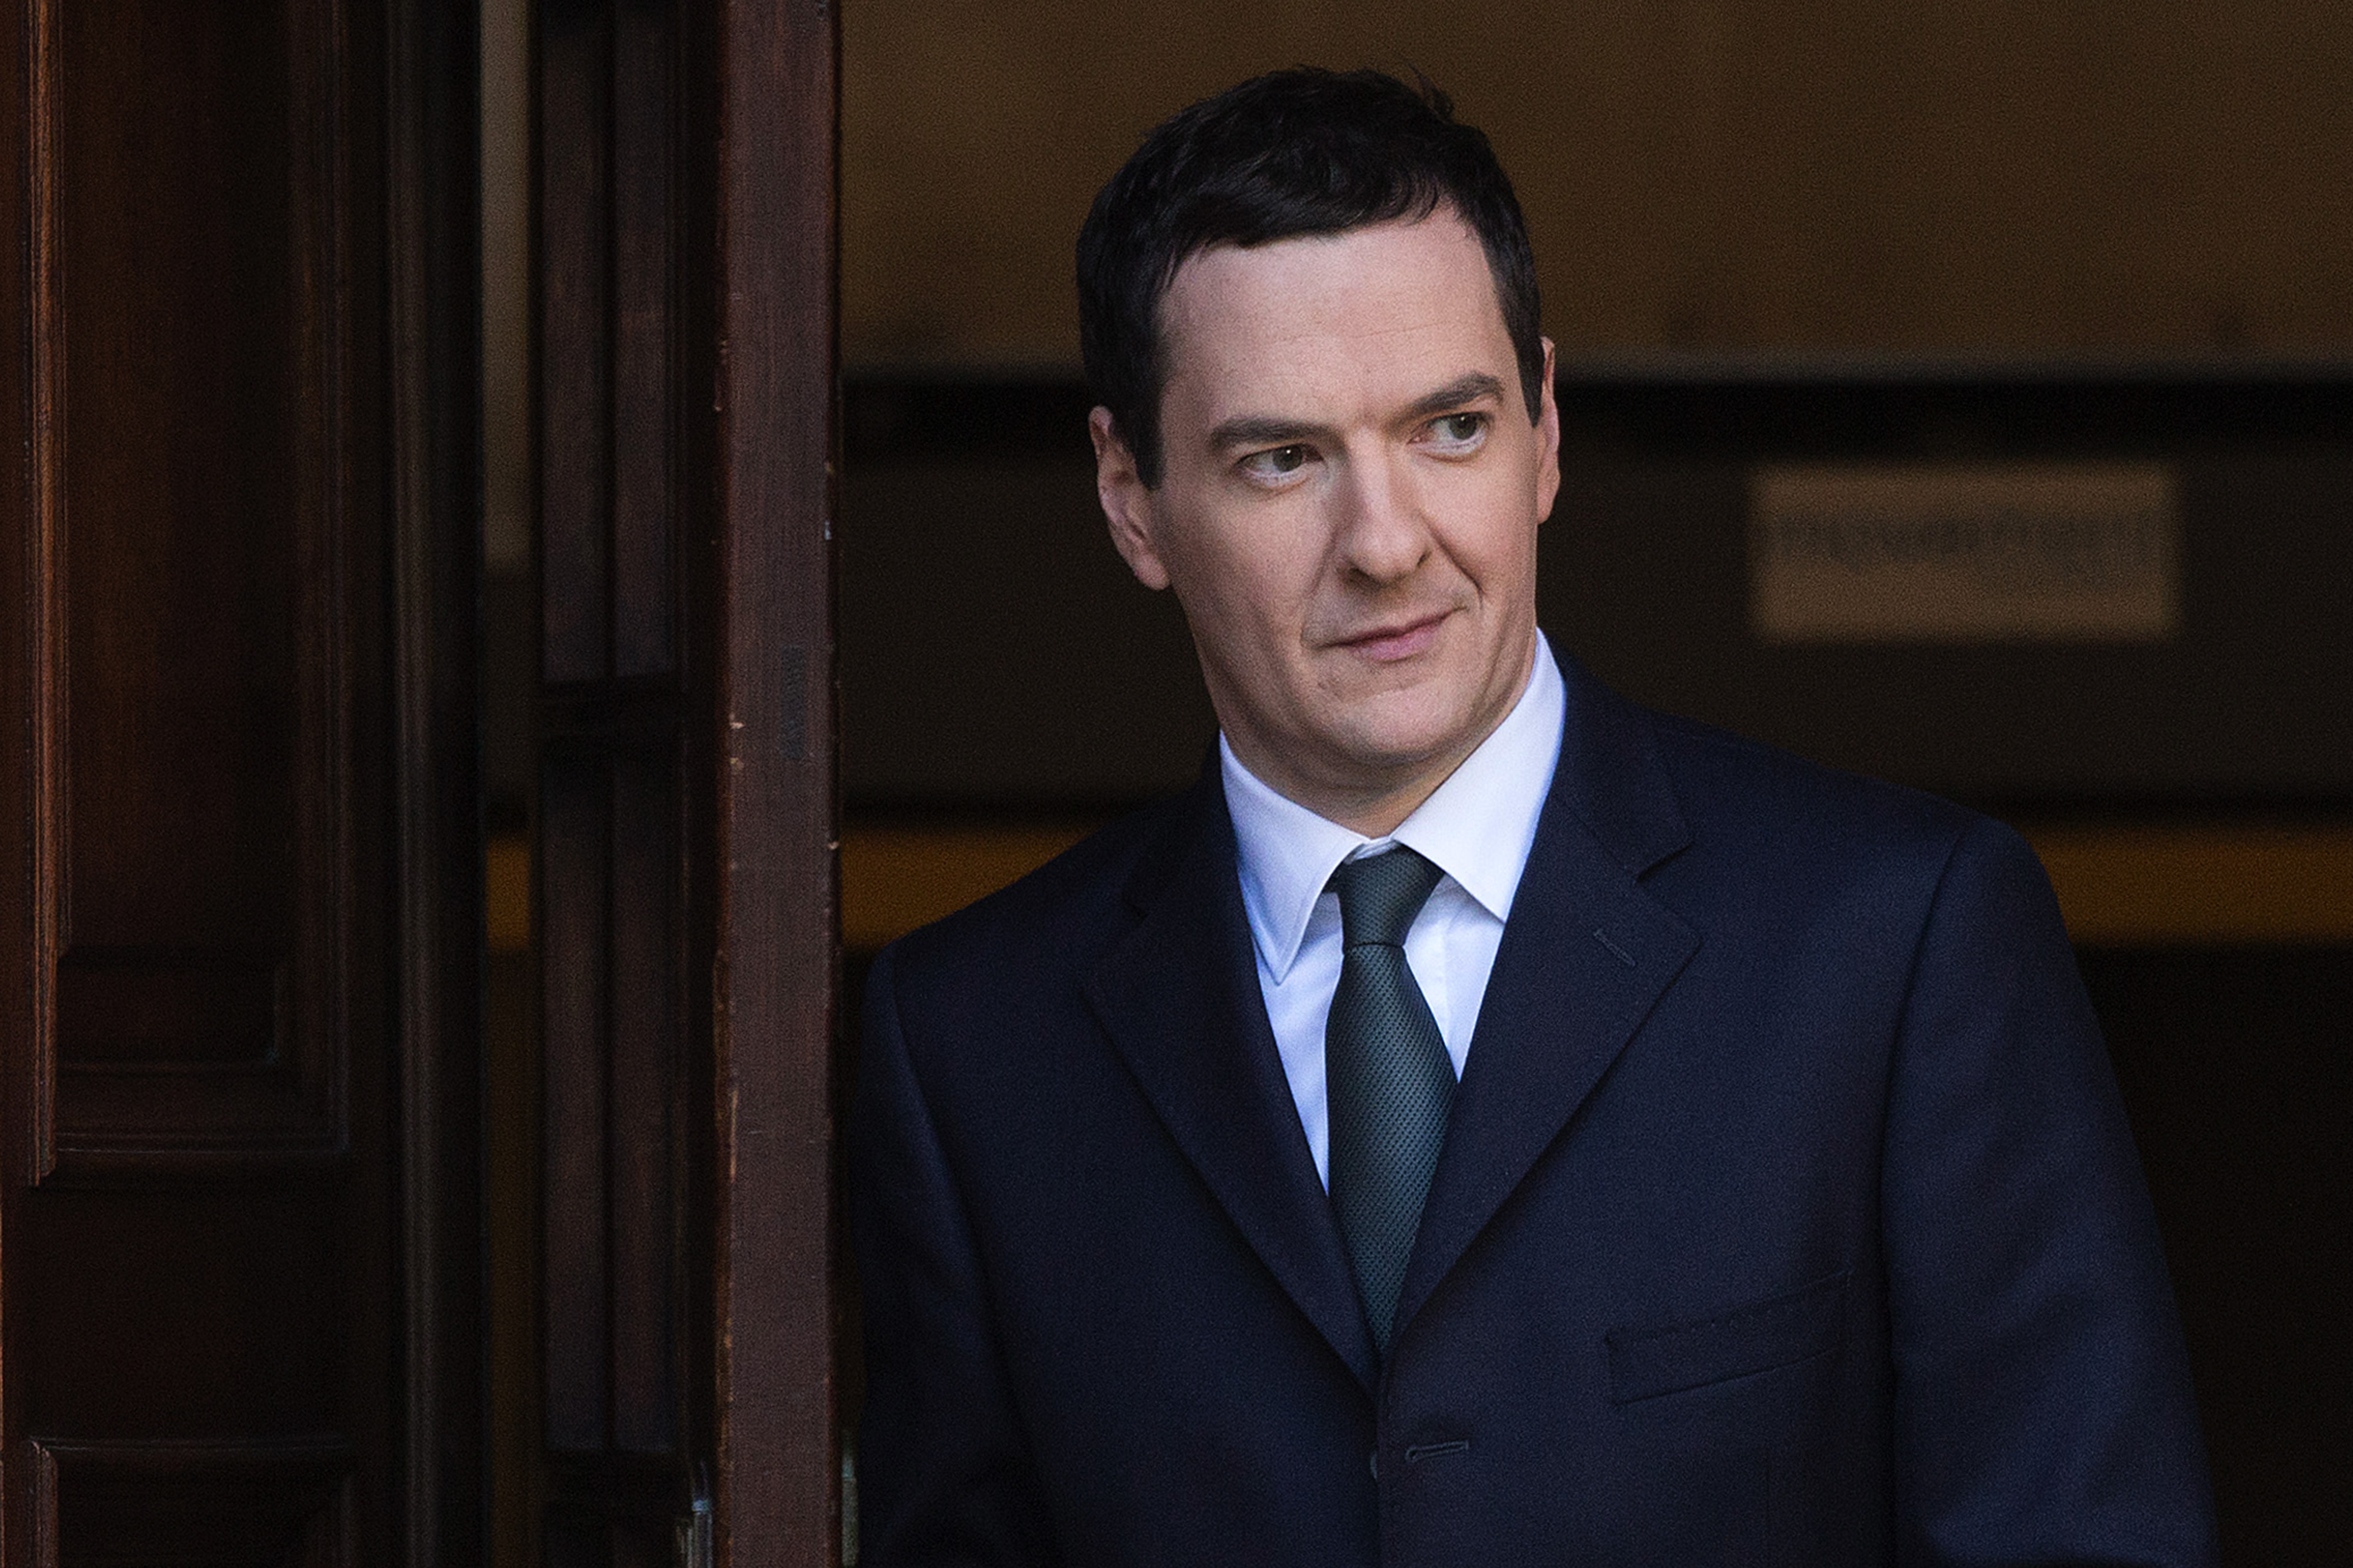 George Osborne U.K. chancellor of the exchequer leaves the HM Treasury building before heading to the Houses of Parliament to deliver his Autumn statement in London on Dec. 3, 2014.